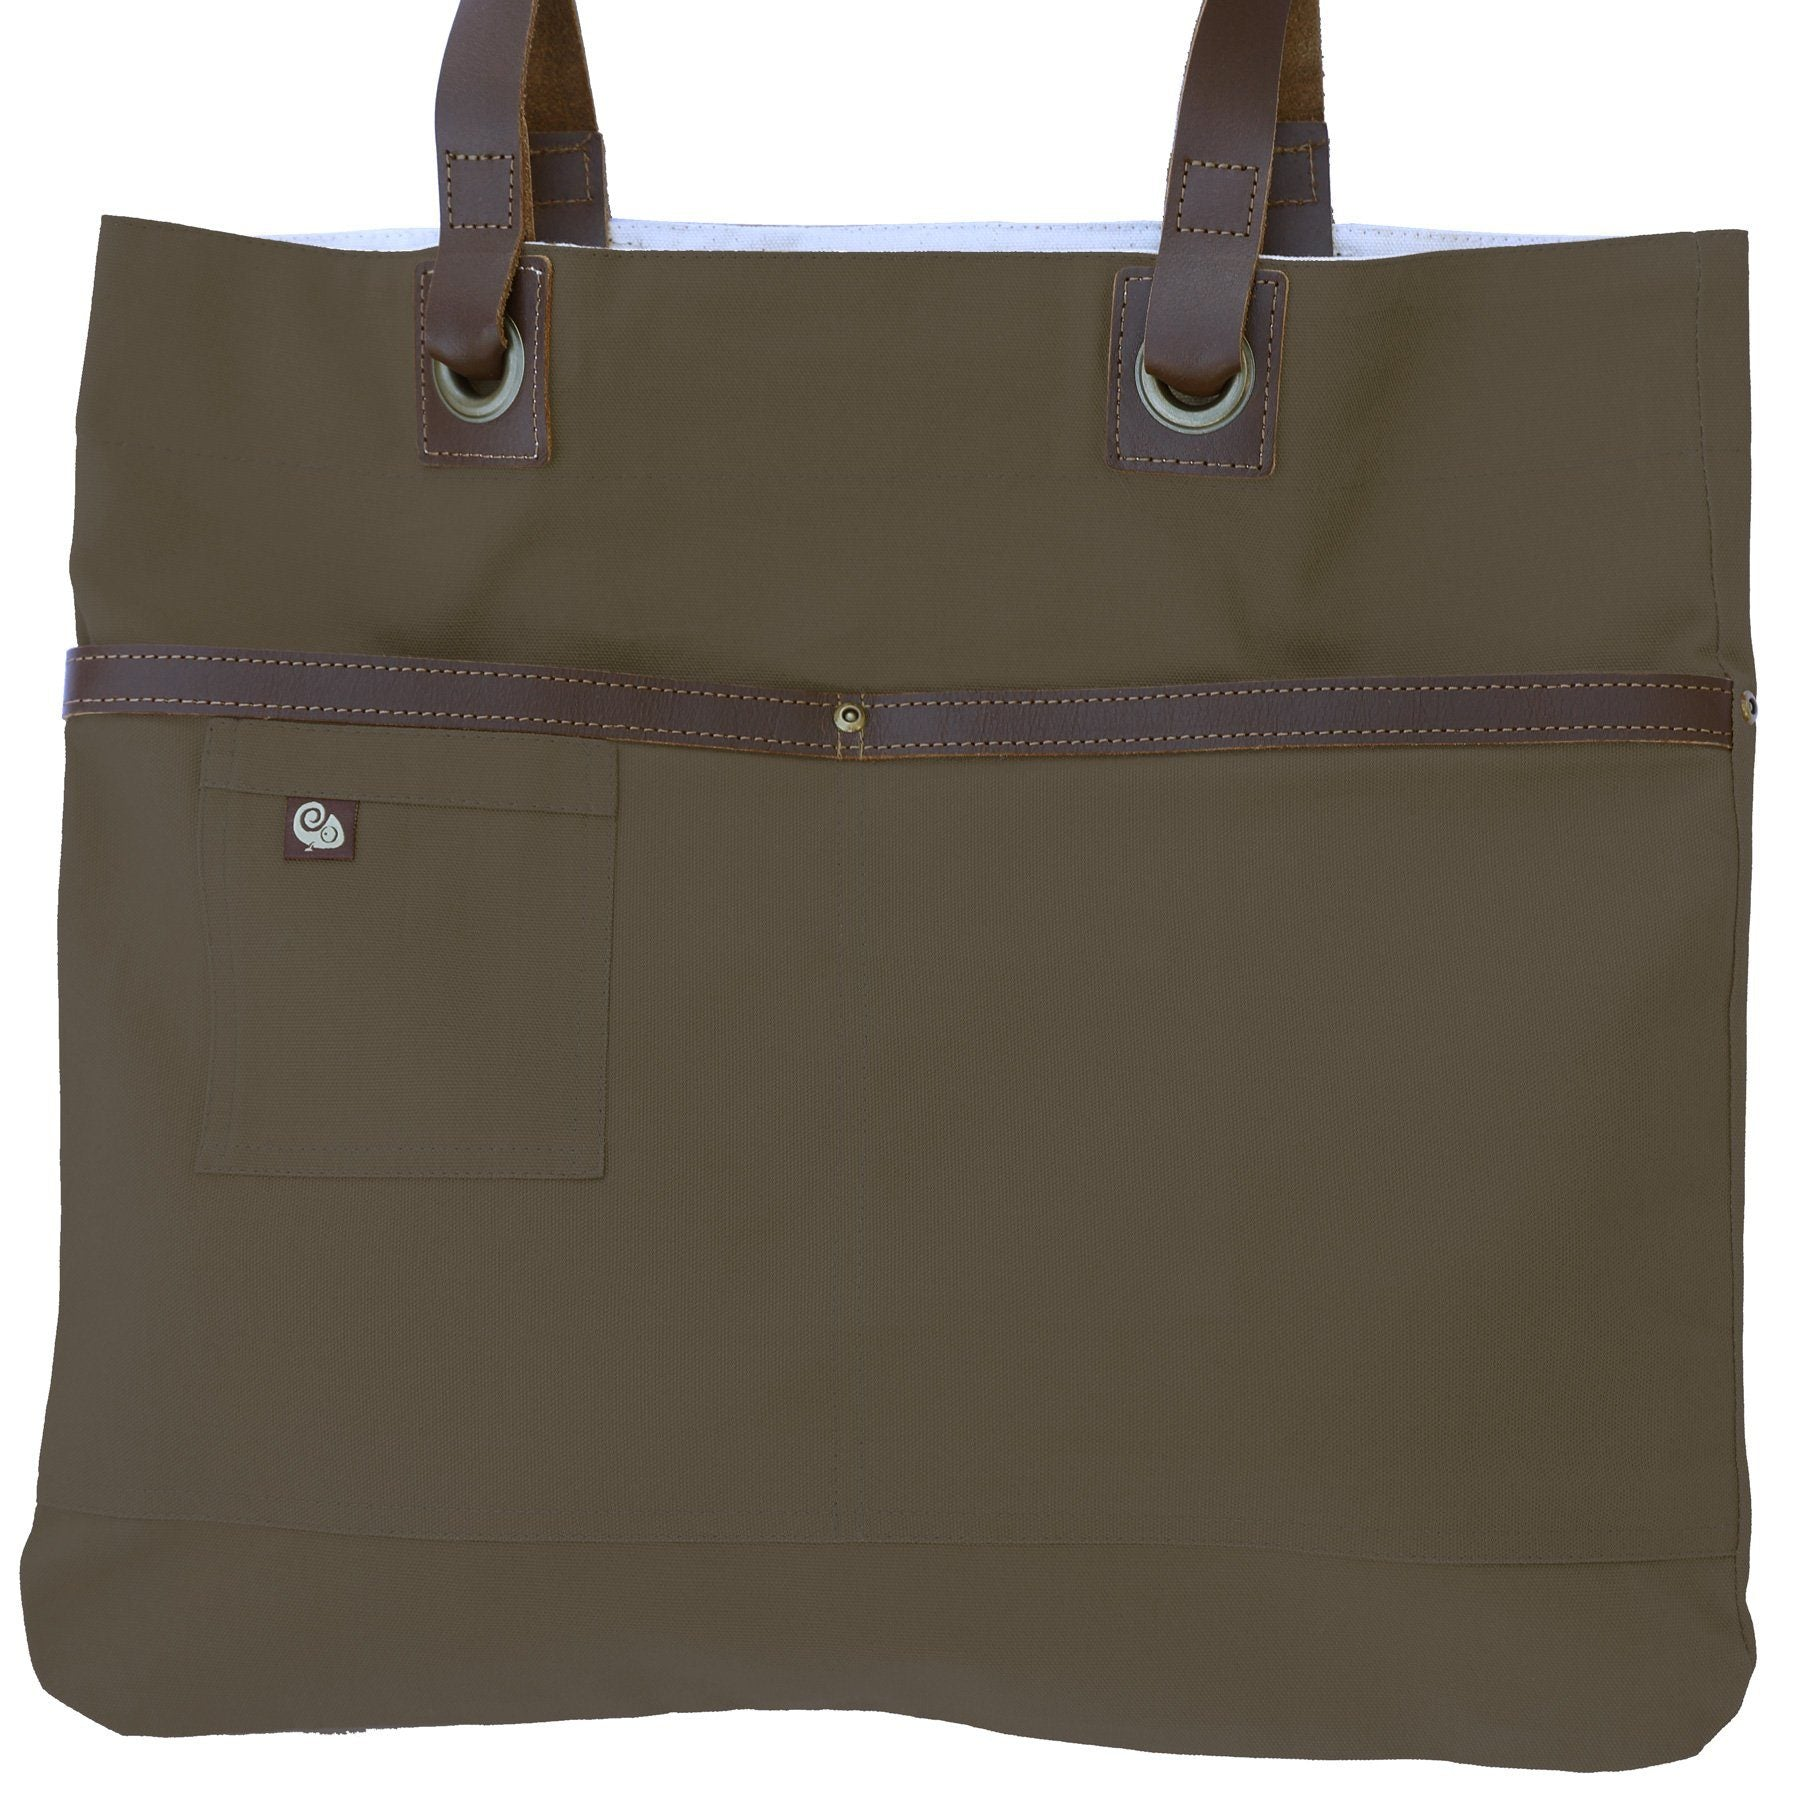 Koda Austell Canvas Bag (Tobacco)